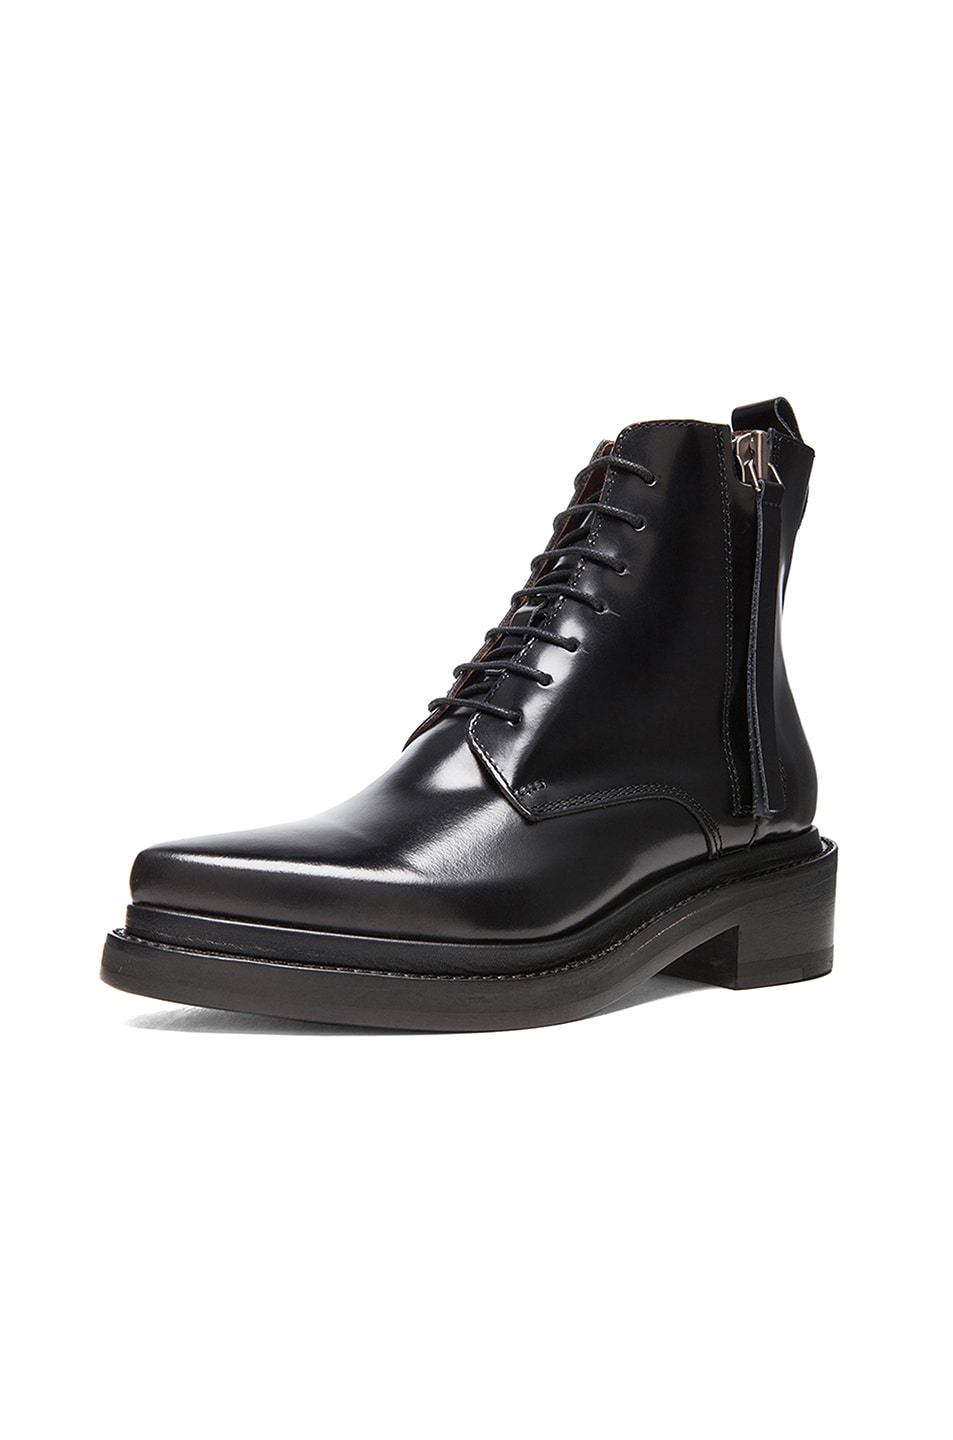 Image 2 of Acne Studios Linden Leather Boots in Black 0a85c1240a4